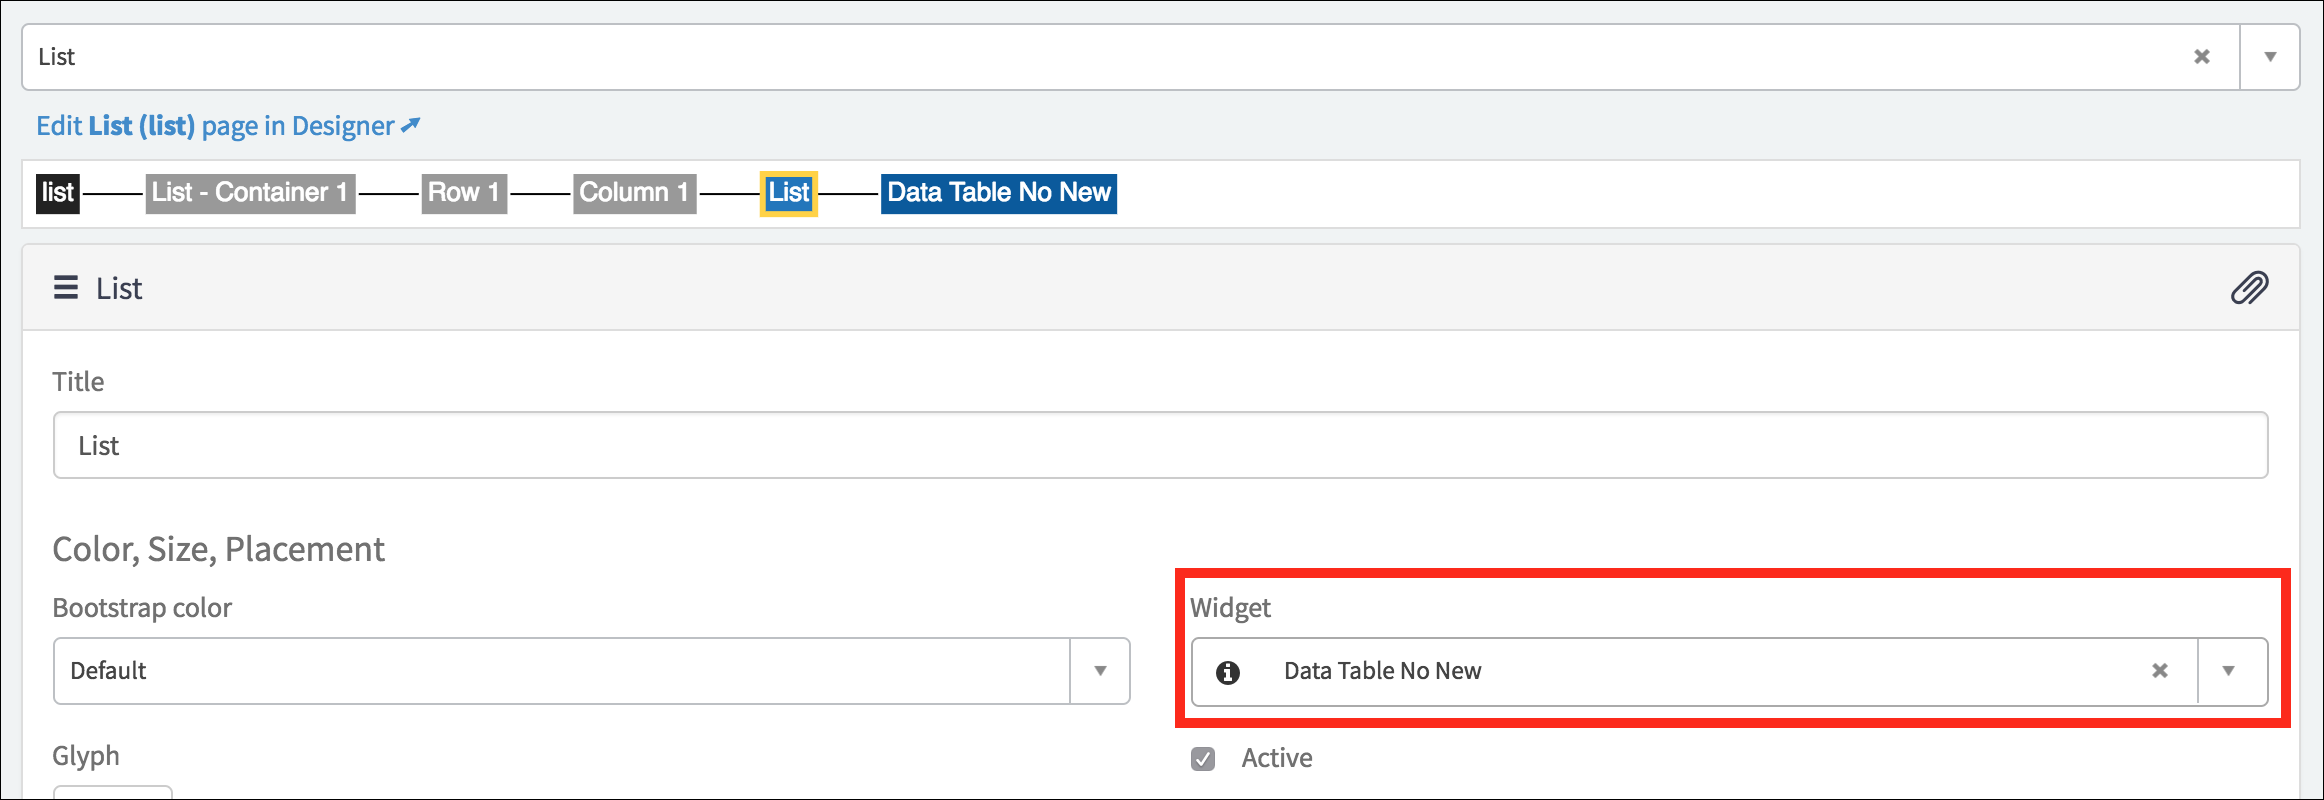 Removing the New button from Service Portal List page - Now Platform